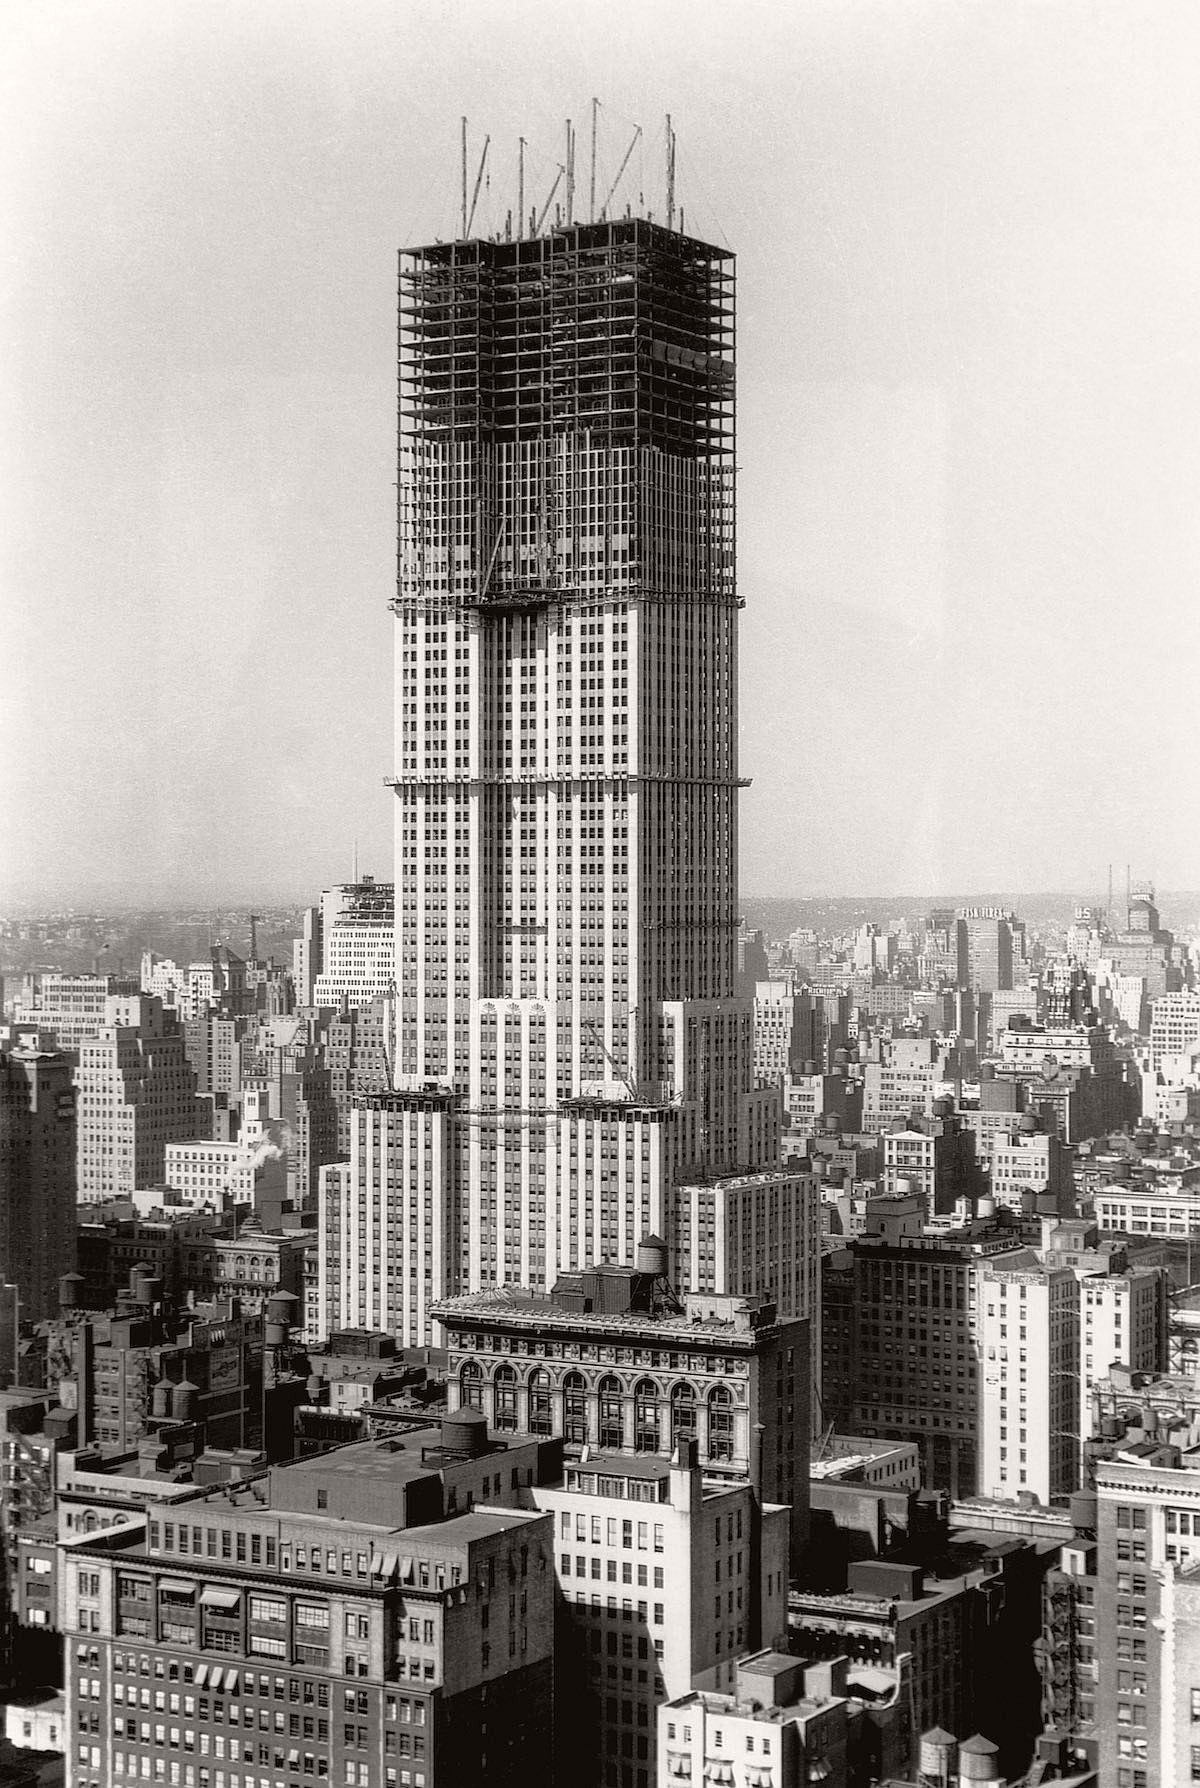 construction of the empire state building As the tallest building in the world from 1931 to 1971, the empire state building is the ancestor of all supertall skyscrapers and makes a lasting impression in the minds of all who have stood beneath, or atop, this international icon.